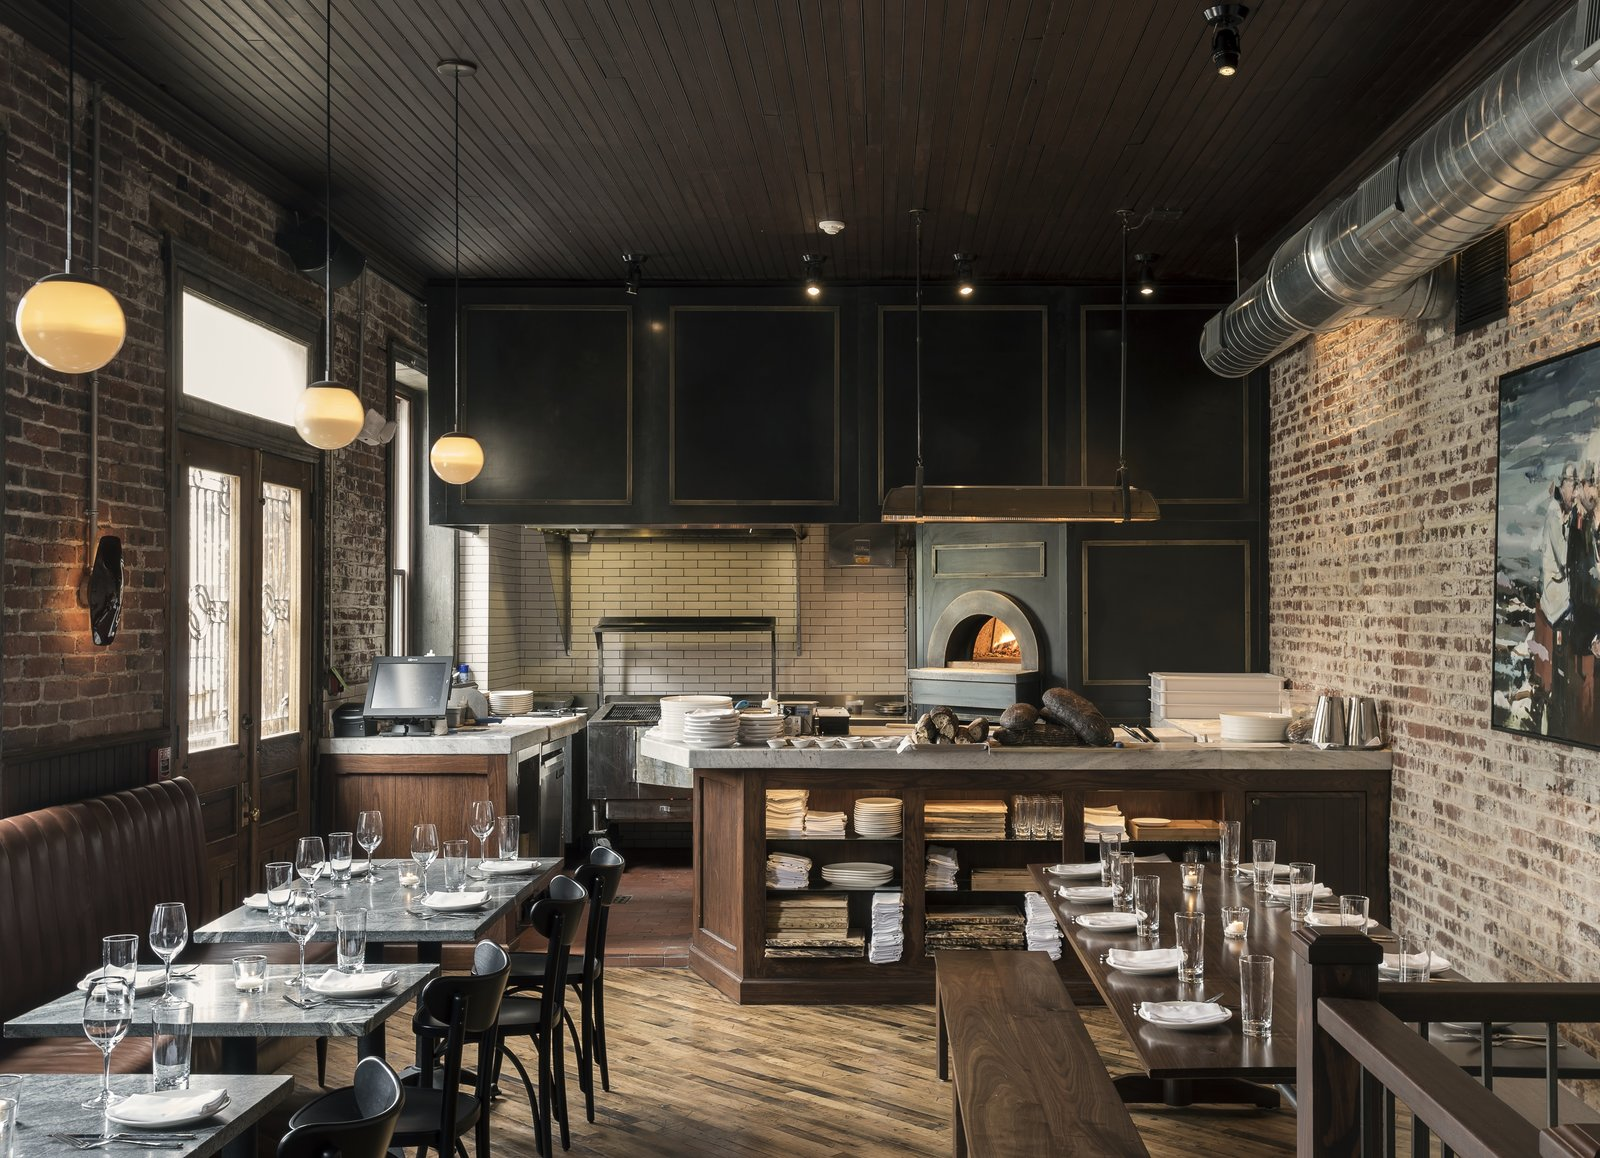 Dining Room, Table, Chair, Bench, Medium Hardwood Floor, Pendant Lighting, Wall Lighting, and Ceiling Lighting An open kitchen concept connects the wood fired oven with the communal dining room.  Photo 9 of 11 in History and Modernity Meet in This Industrial Hotel and Restaurant in Philadelphia